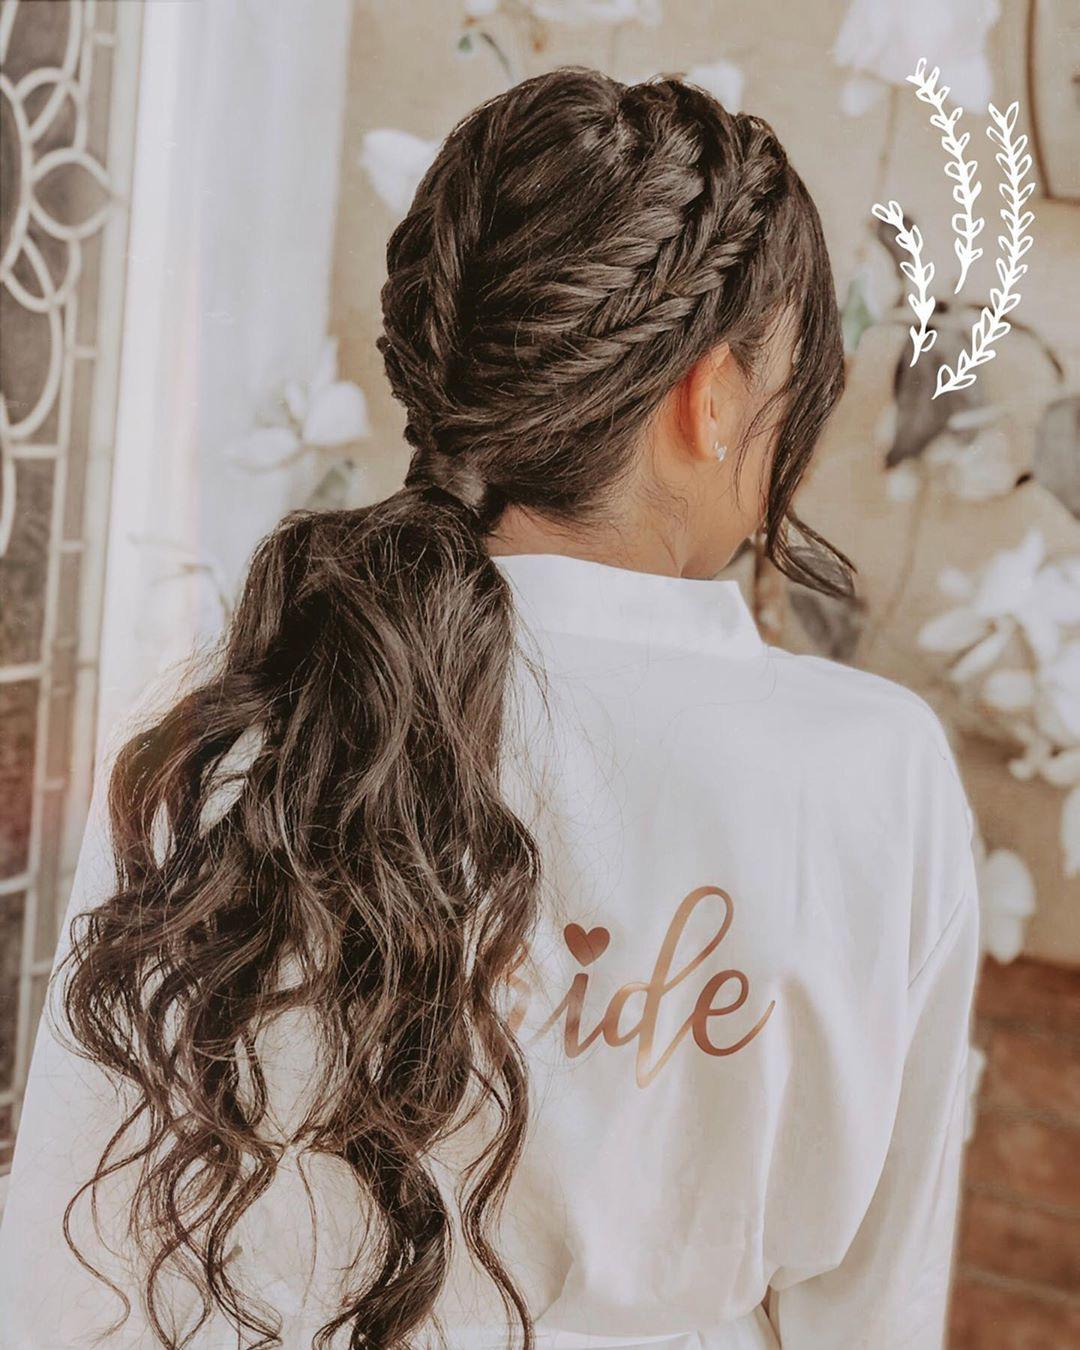 35 The Gorgeous Honey Hairstyles Make You Queen in the Wedding - VimTopic